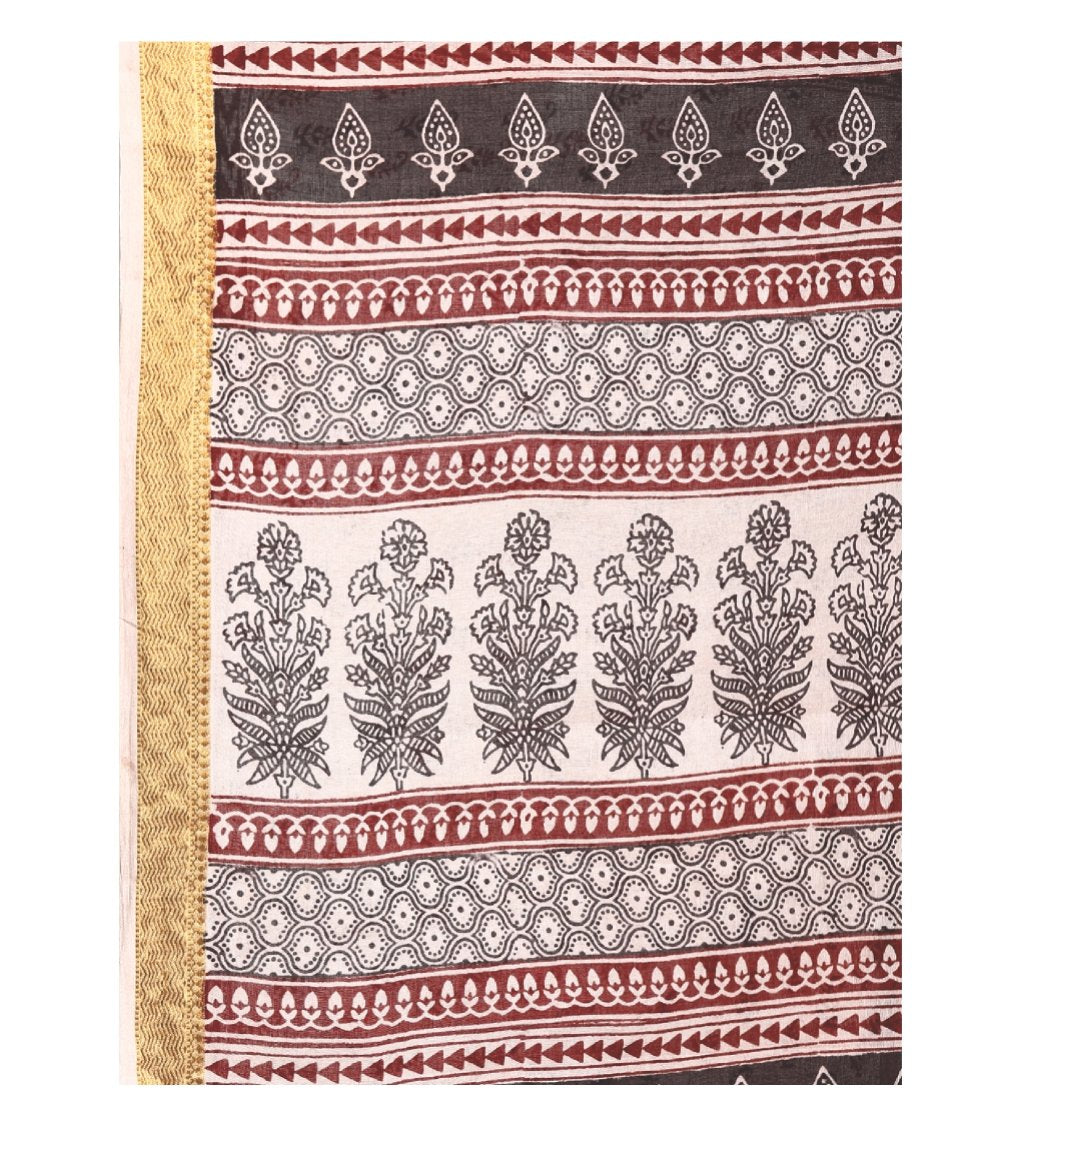 Pink Cotton Hand Block Bagh Print Handcrafted Saree-Saree-Kalakari India-ZIBASA0058-Bagh, Cotton, Geographical Indication, Hand Blocks, Hand Crafted, Heritage Prints, Natural Dyes, Sarees, Sustainable Fabrics-[Linen,Ethnic,wear,Fashionista,Handloom,Handicraft,Indigo,blockprint,block,print,Cotton,Chanderi,Blue, latest,classy,party,bollywood,trendy,summer,style,traditional,formal,elegant,unique,style,hand,block,print, dabu,booti,gift,present,glamorous,affordable,collectible,Sari,Saree,printed, hol